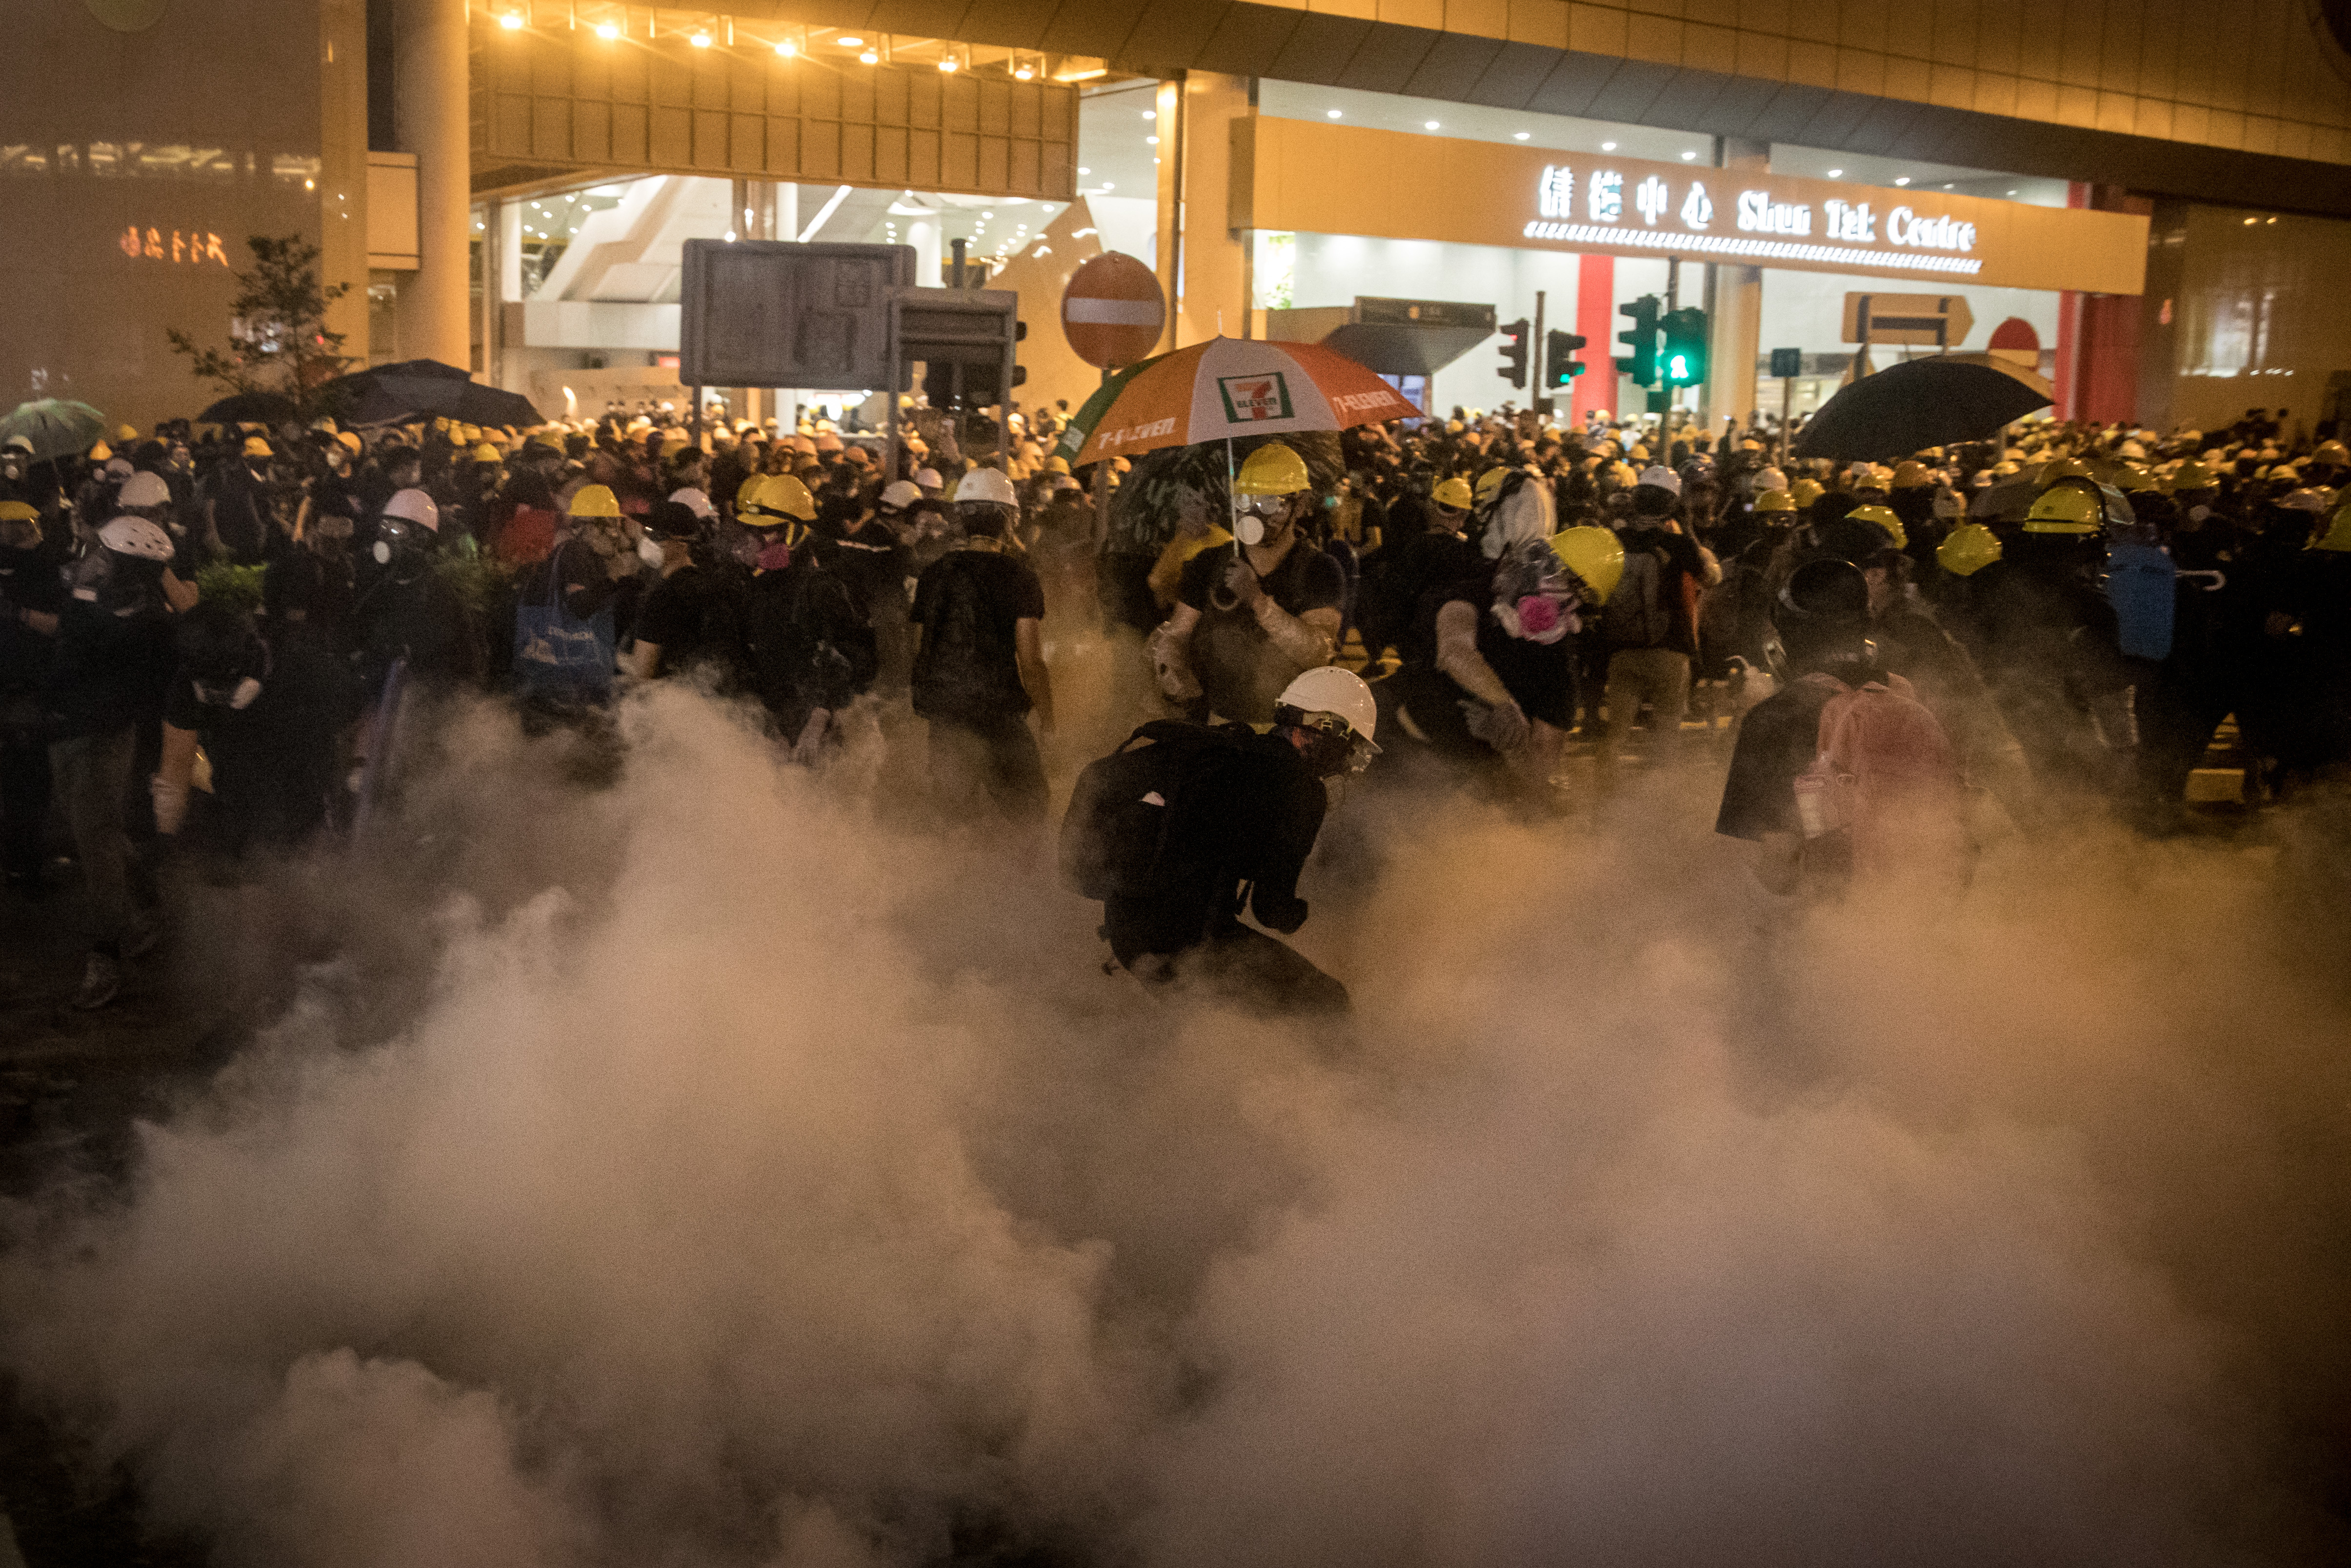 Police spray tear gas at protesters clash at an anti-extradition bill march on July 21, 2019 in Hong Kong.